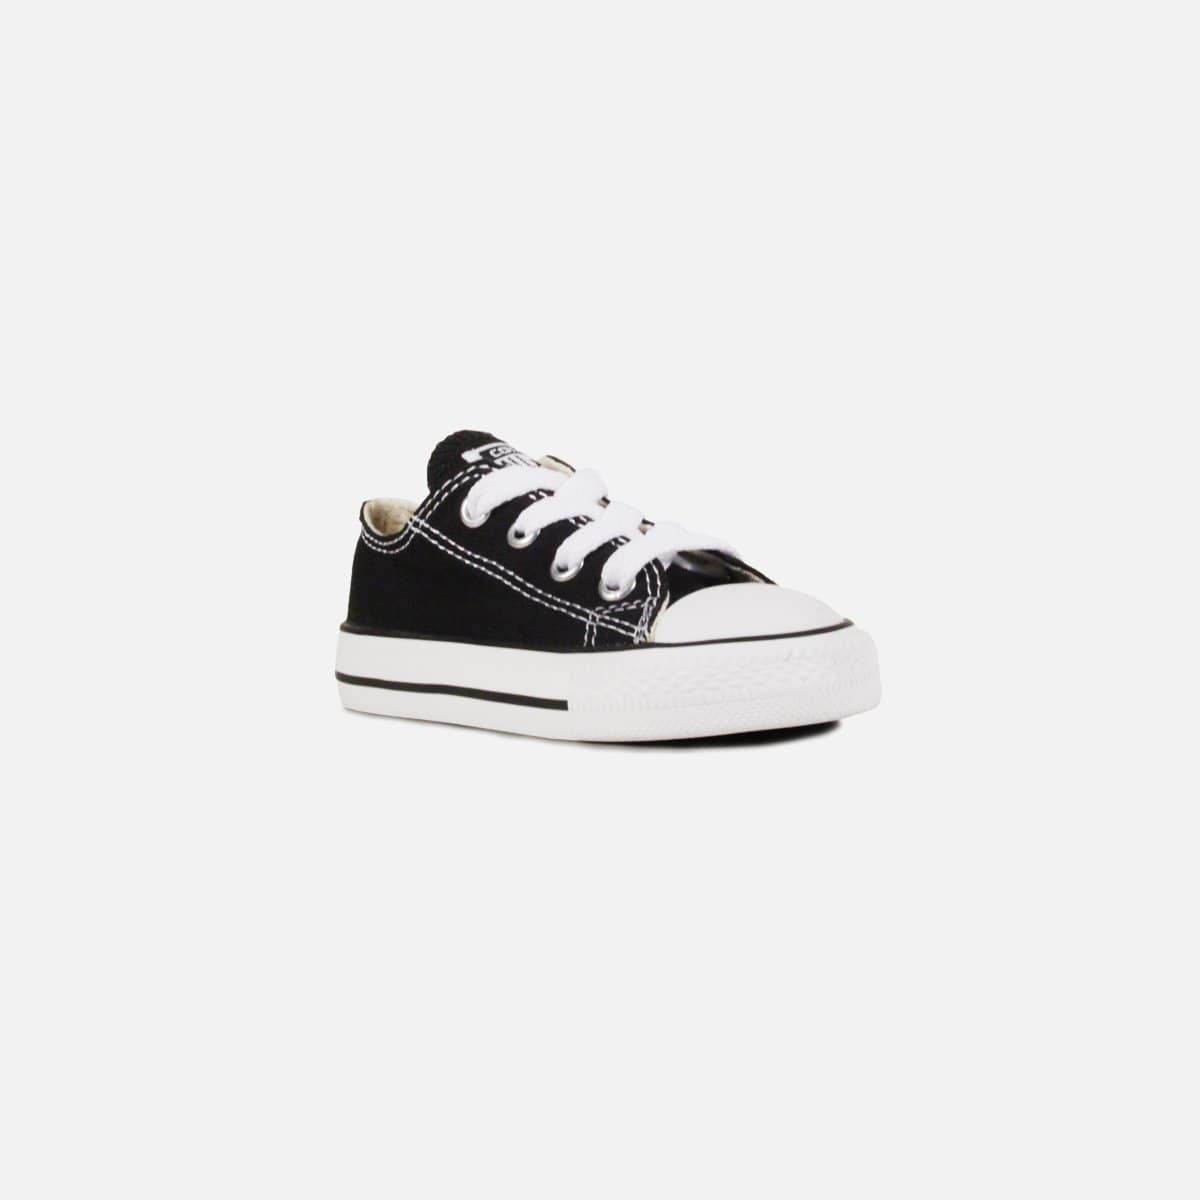 CHUCK TAYLOR LOW TODDLER